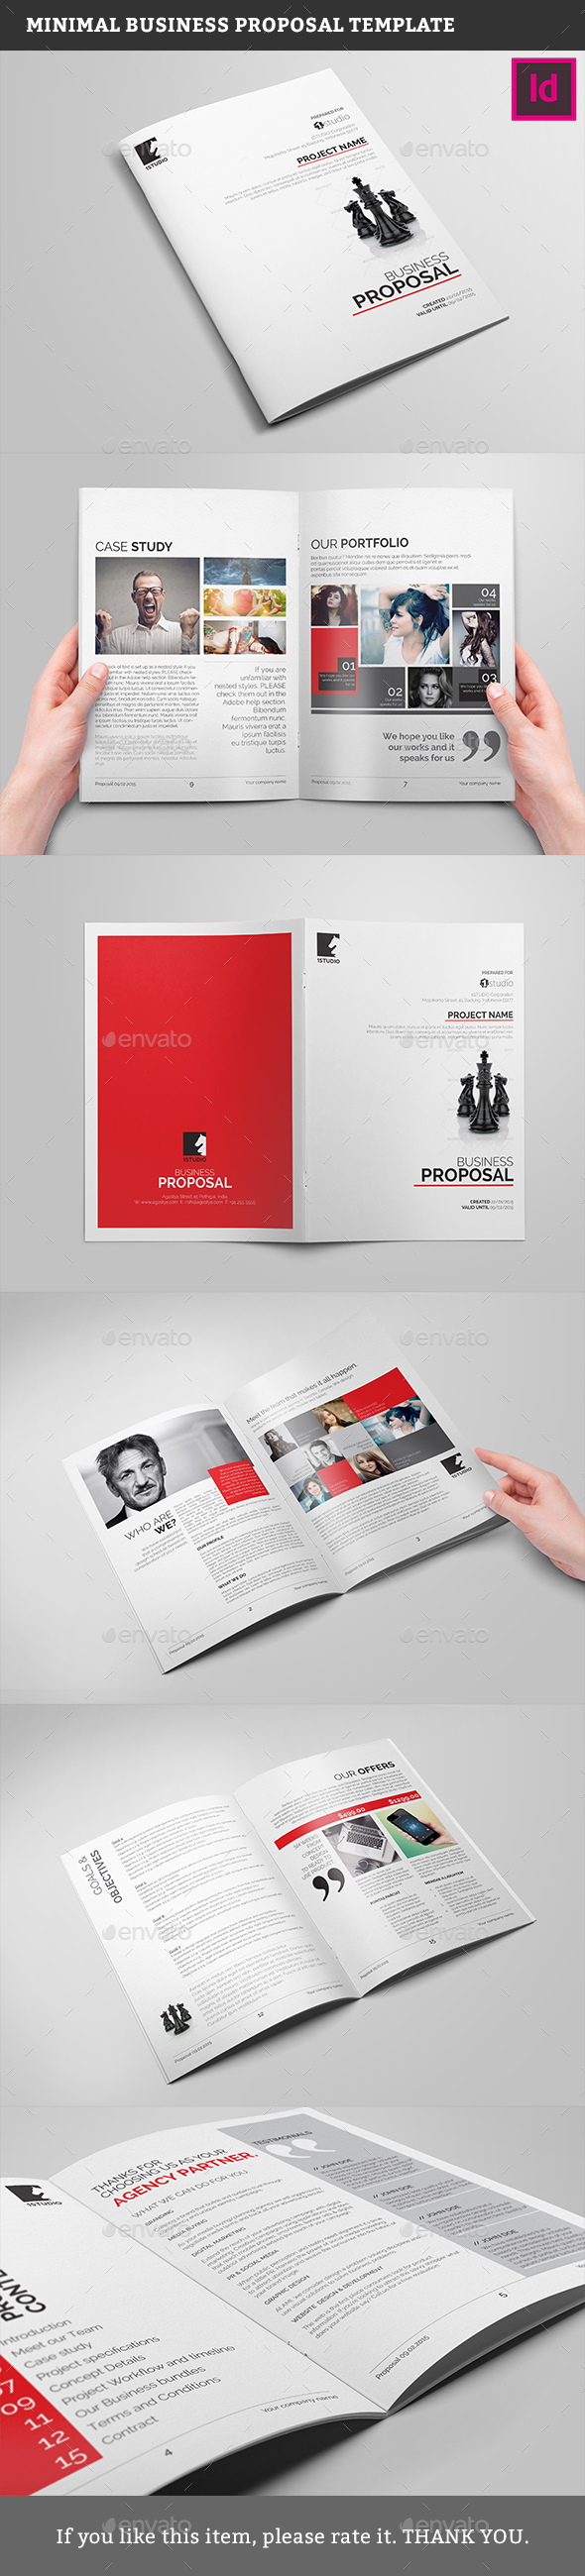 Minimal Business Proposal Template - Proposals & Invoices Stationery